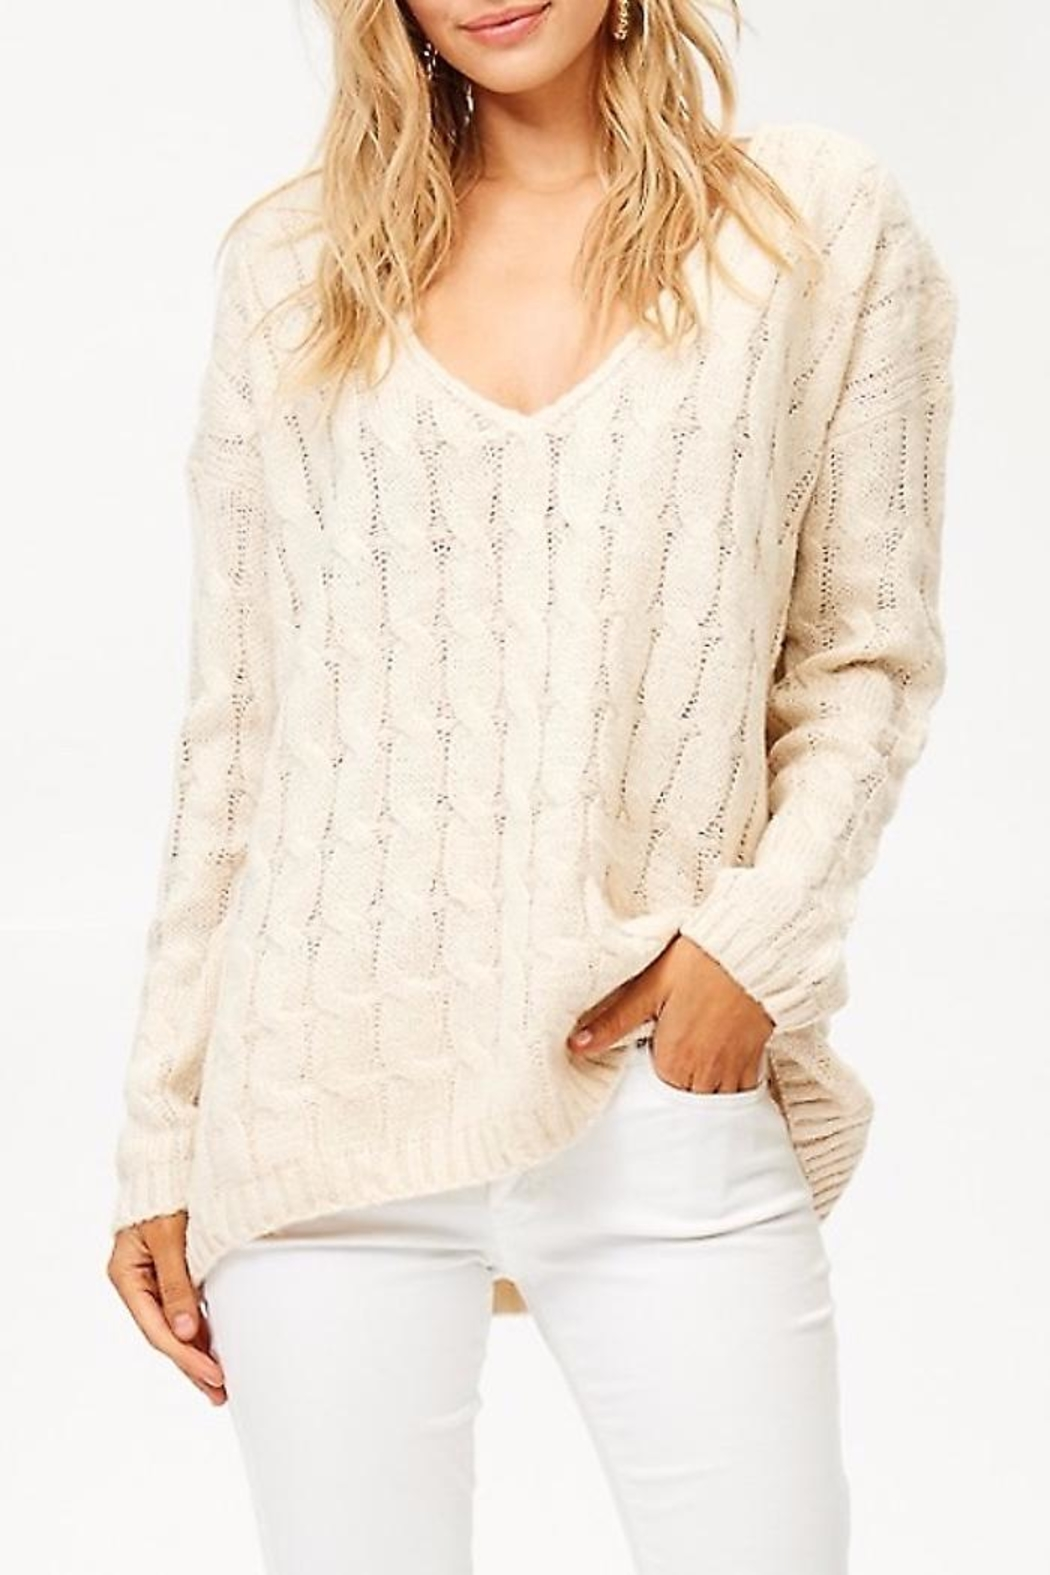 People Outfitter v-Neck Knit Sweater - Side Cropped Image